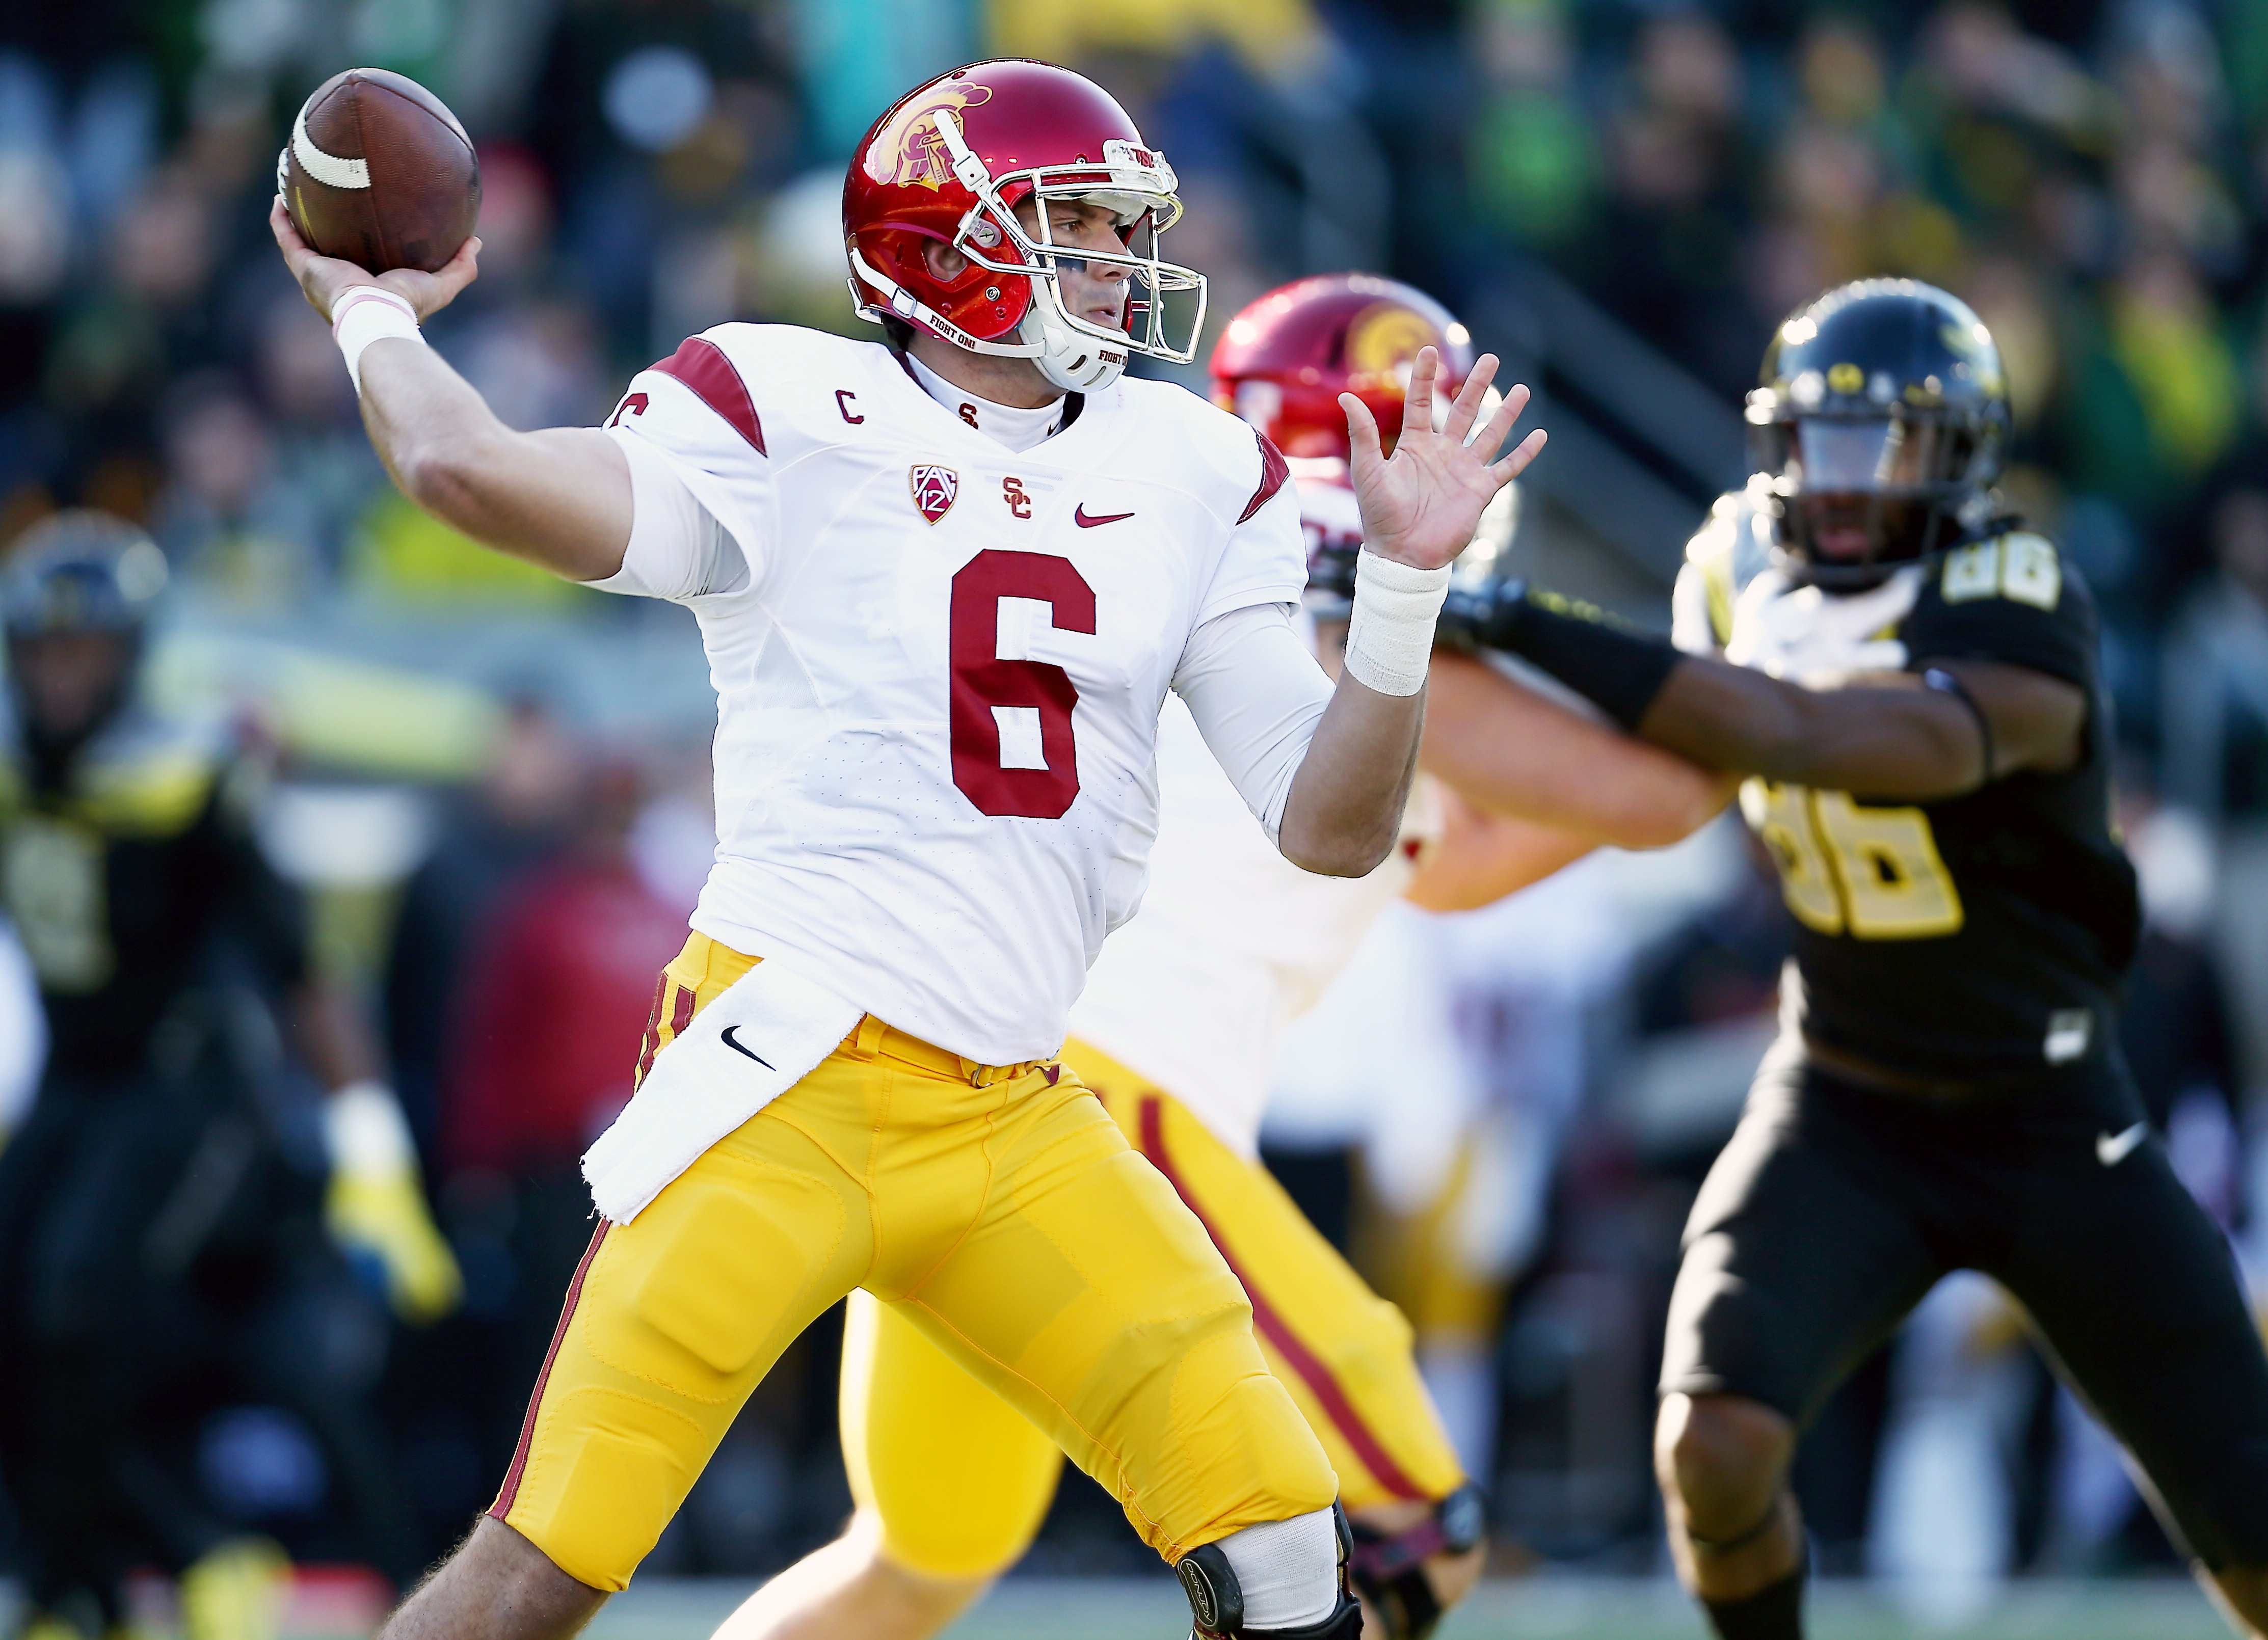 Southern California quarterback Cody Kessler (6) throws the football during the first half of an NCAA college football game against Oregon, Saturday, Nov. 21, 2015, in Eugene, Ore. (AP Photo/Ryan Kang)